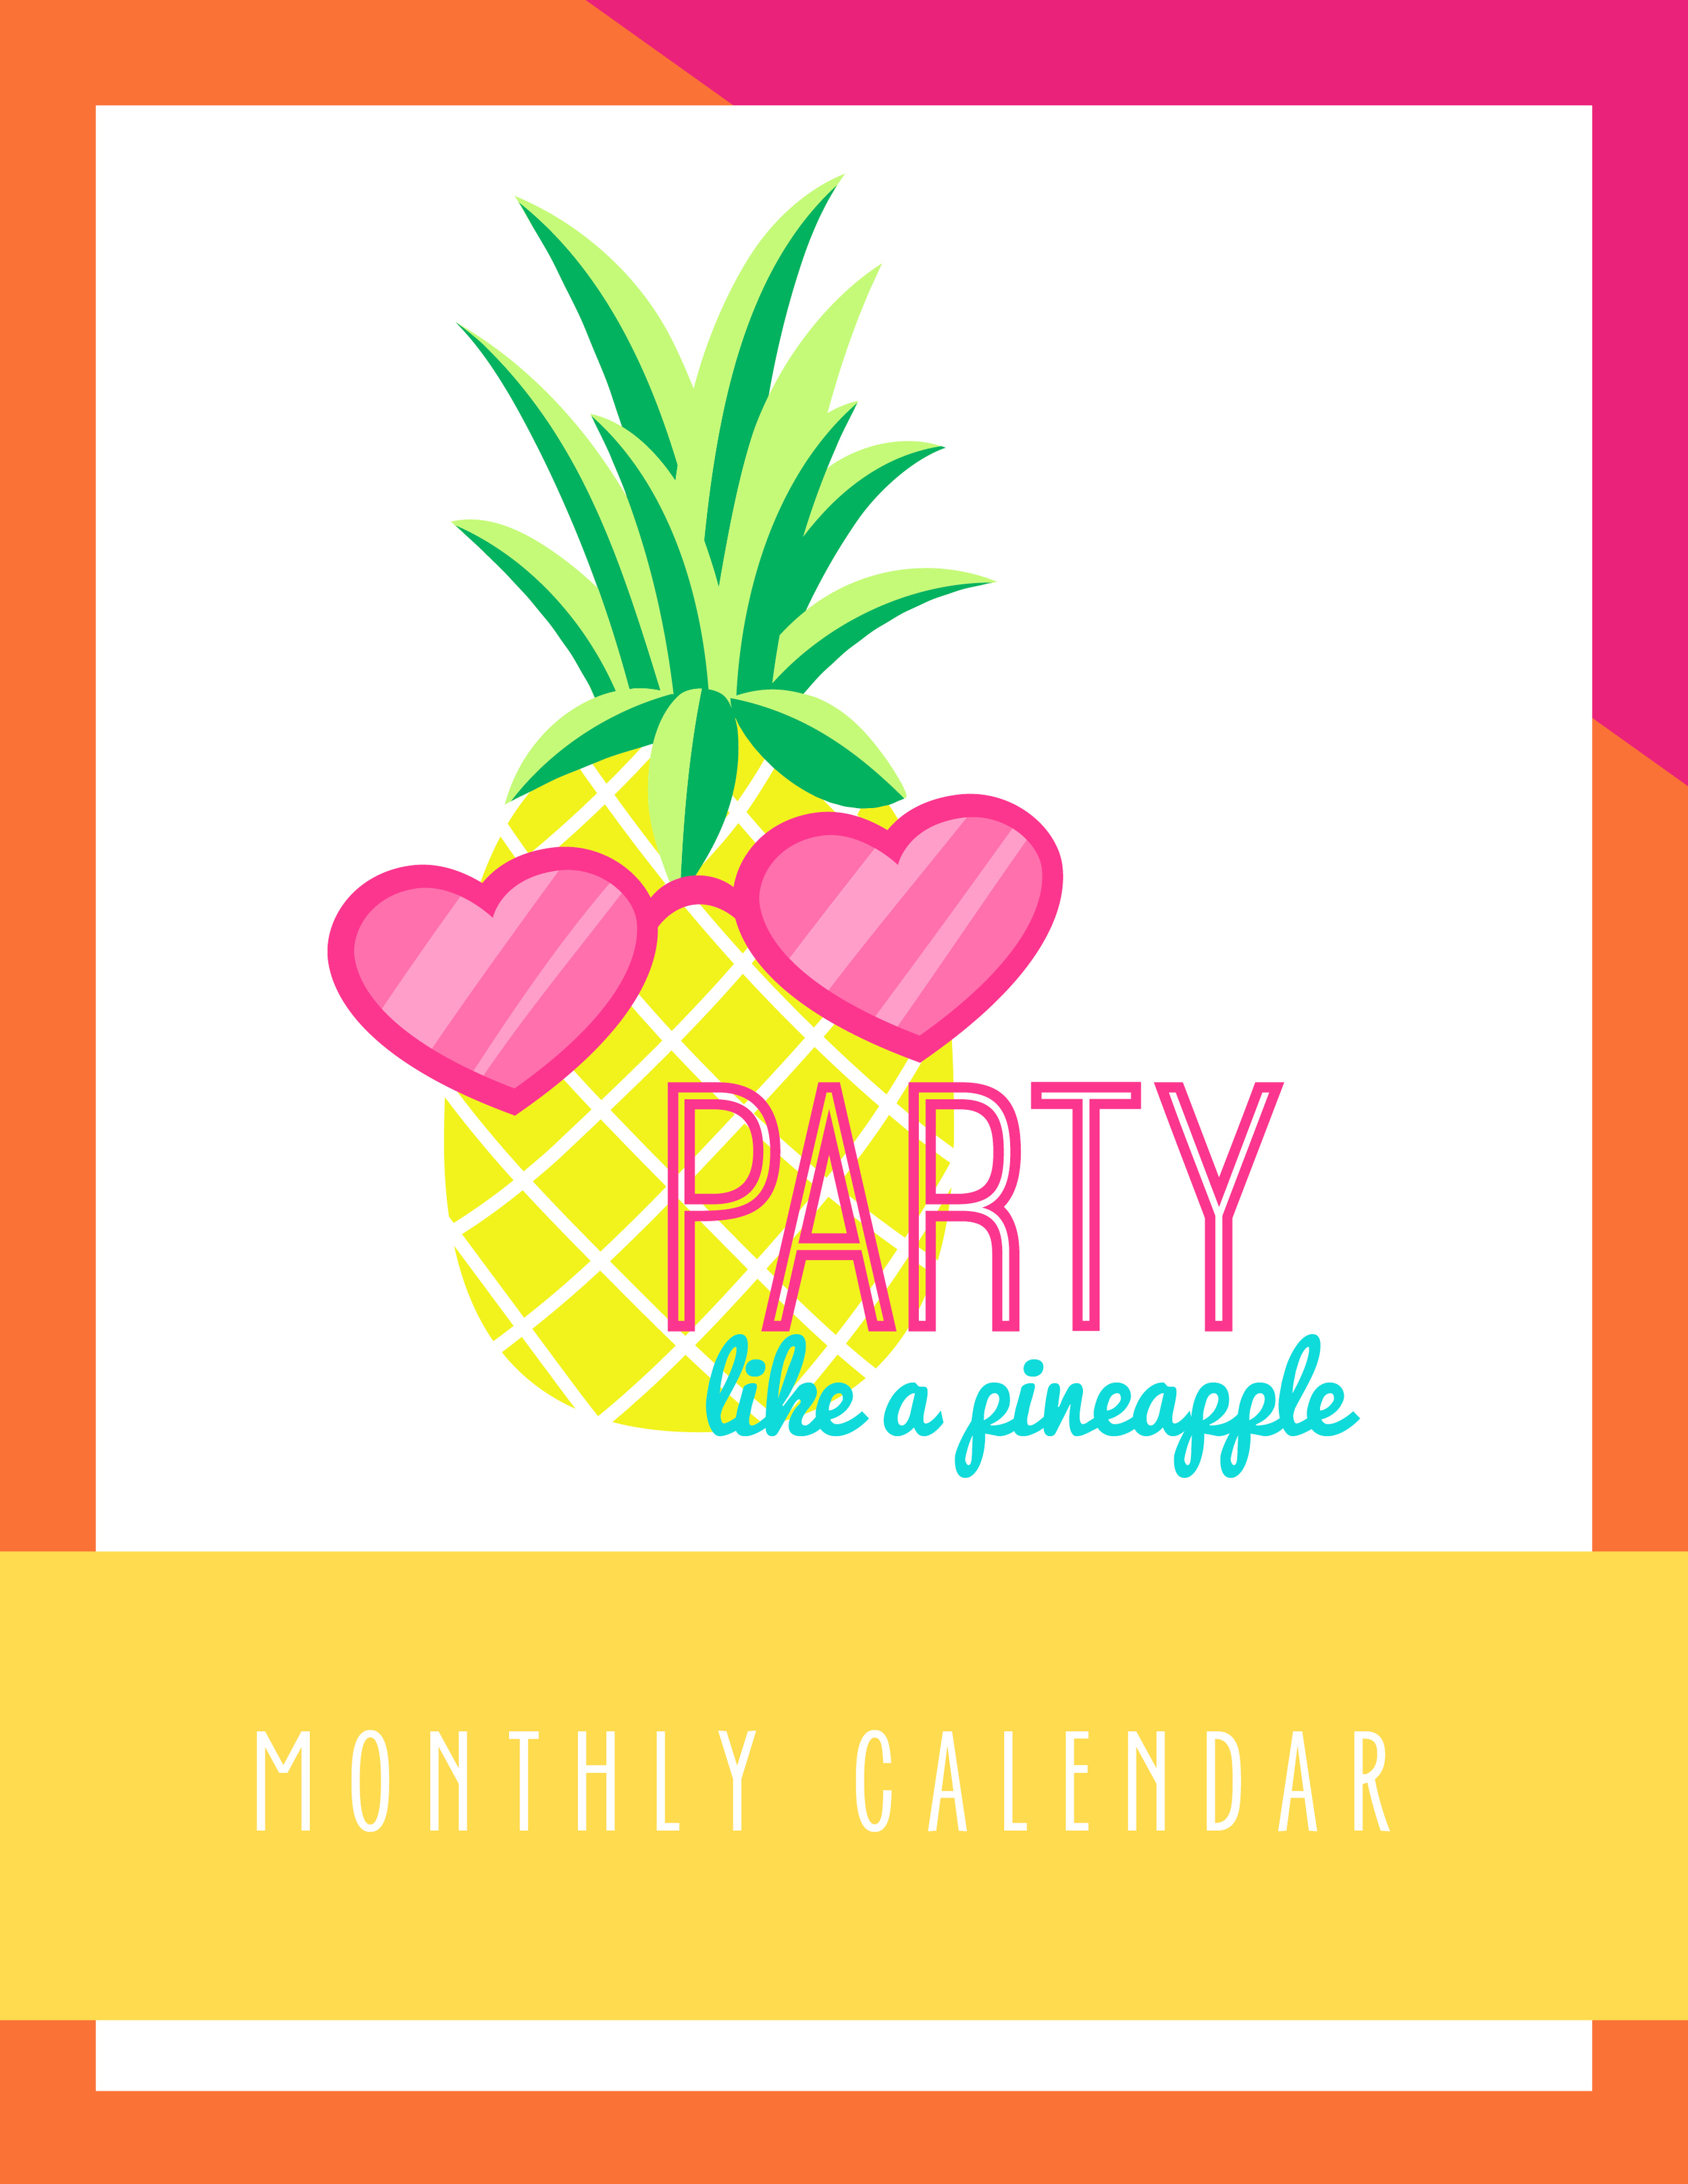 Bold & Pop Freebies Party Like a Pineapple Monthly Calendar